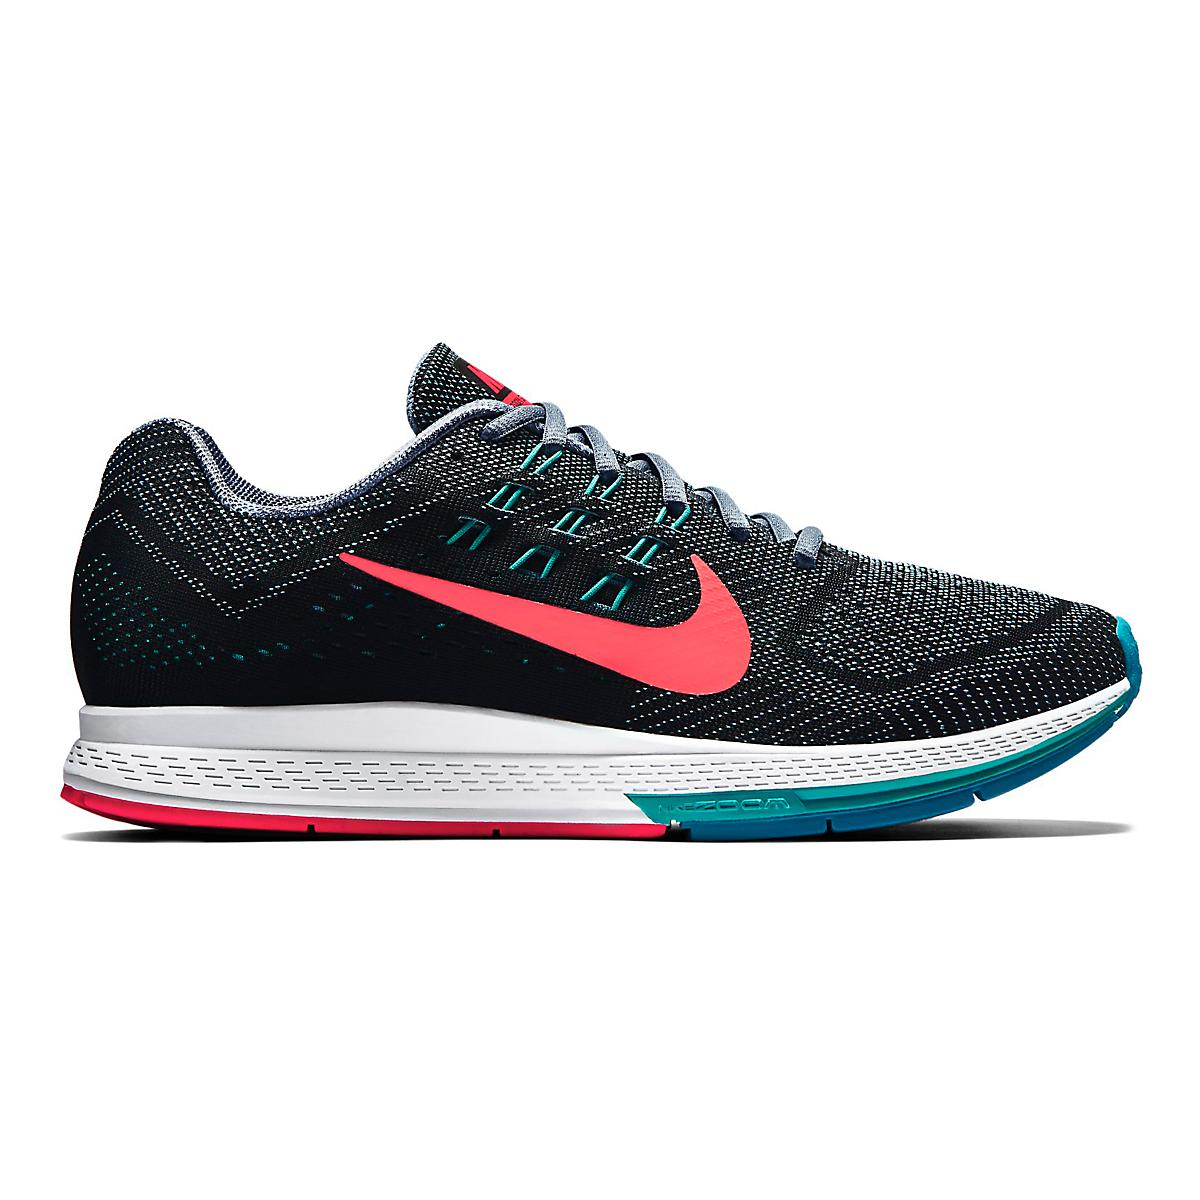 c7616c1bde0c Womens Nike Air Zoom Structure 18 Running Shoe at Road Runner Sports